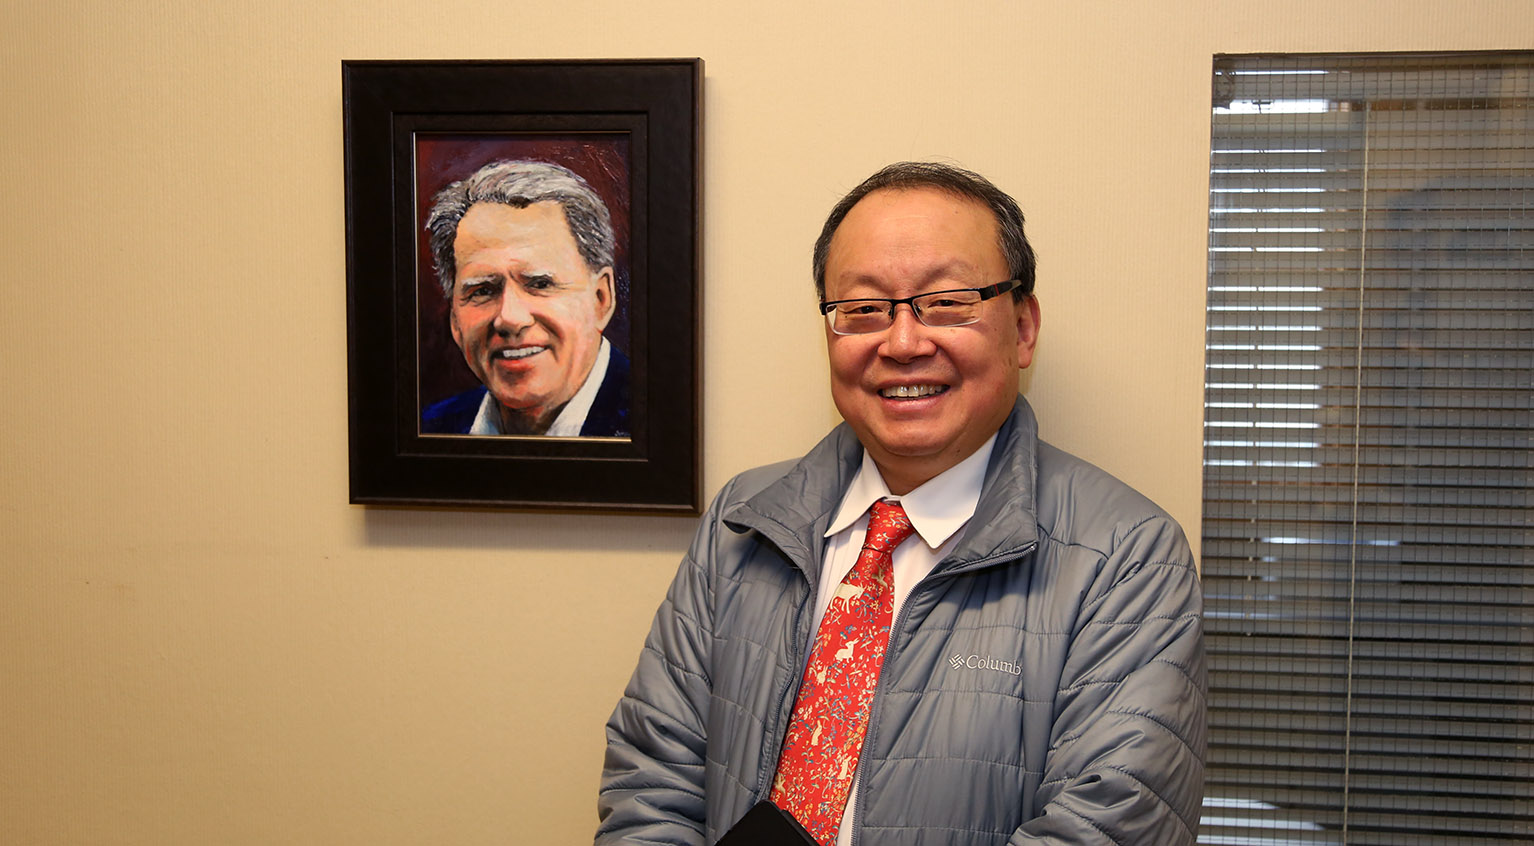 Jung Yoo, M.D., with portrait of Mark Richardson